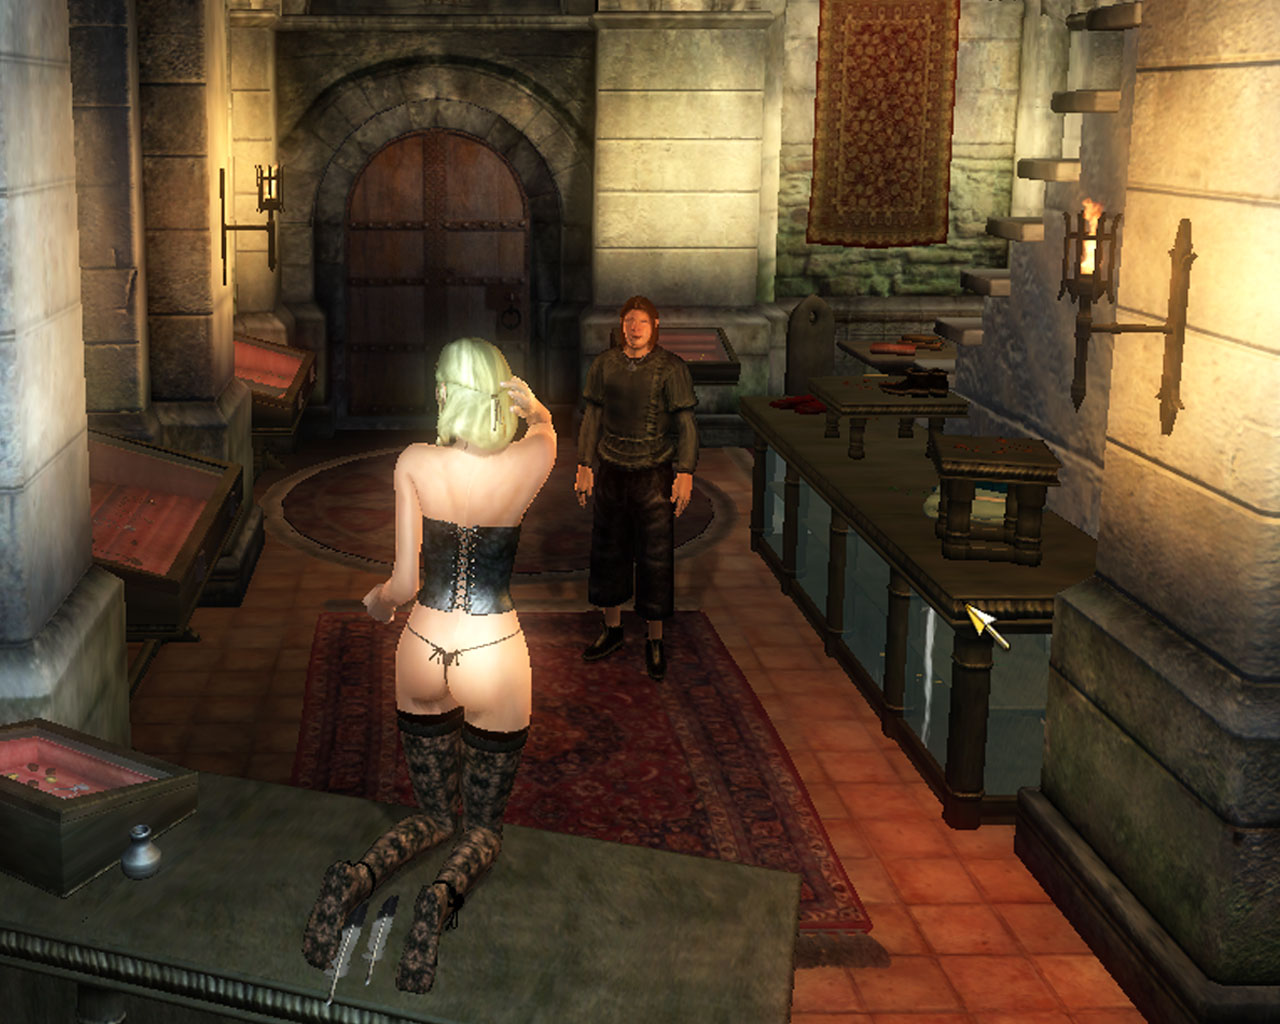 Elder scrolls 4 sex mod naked video